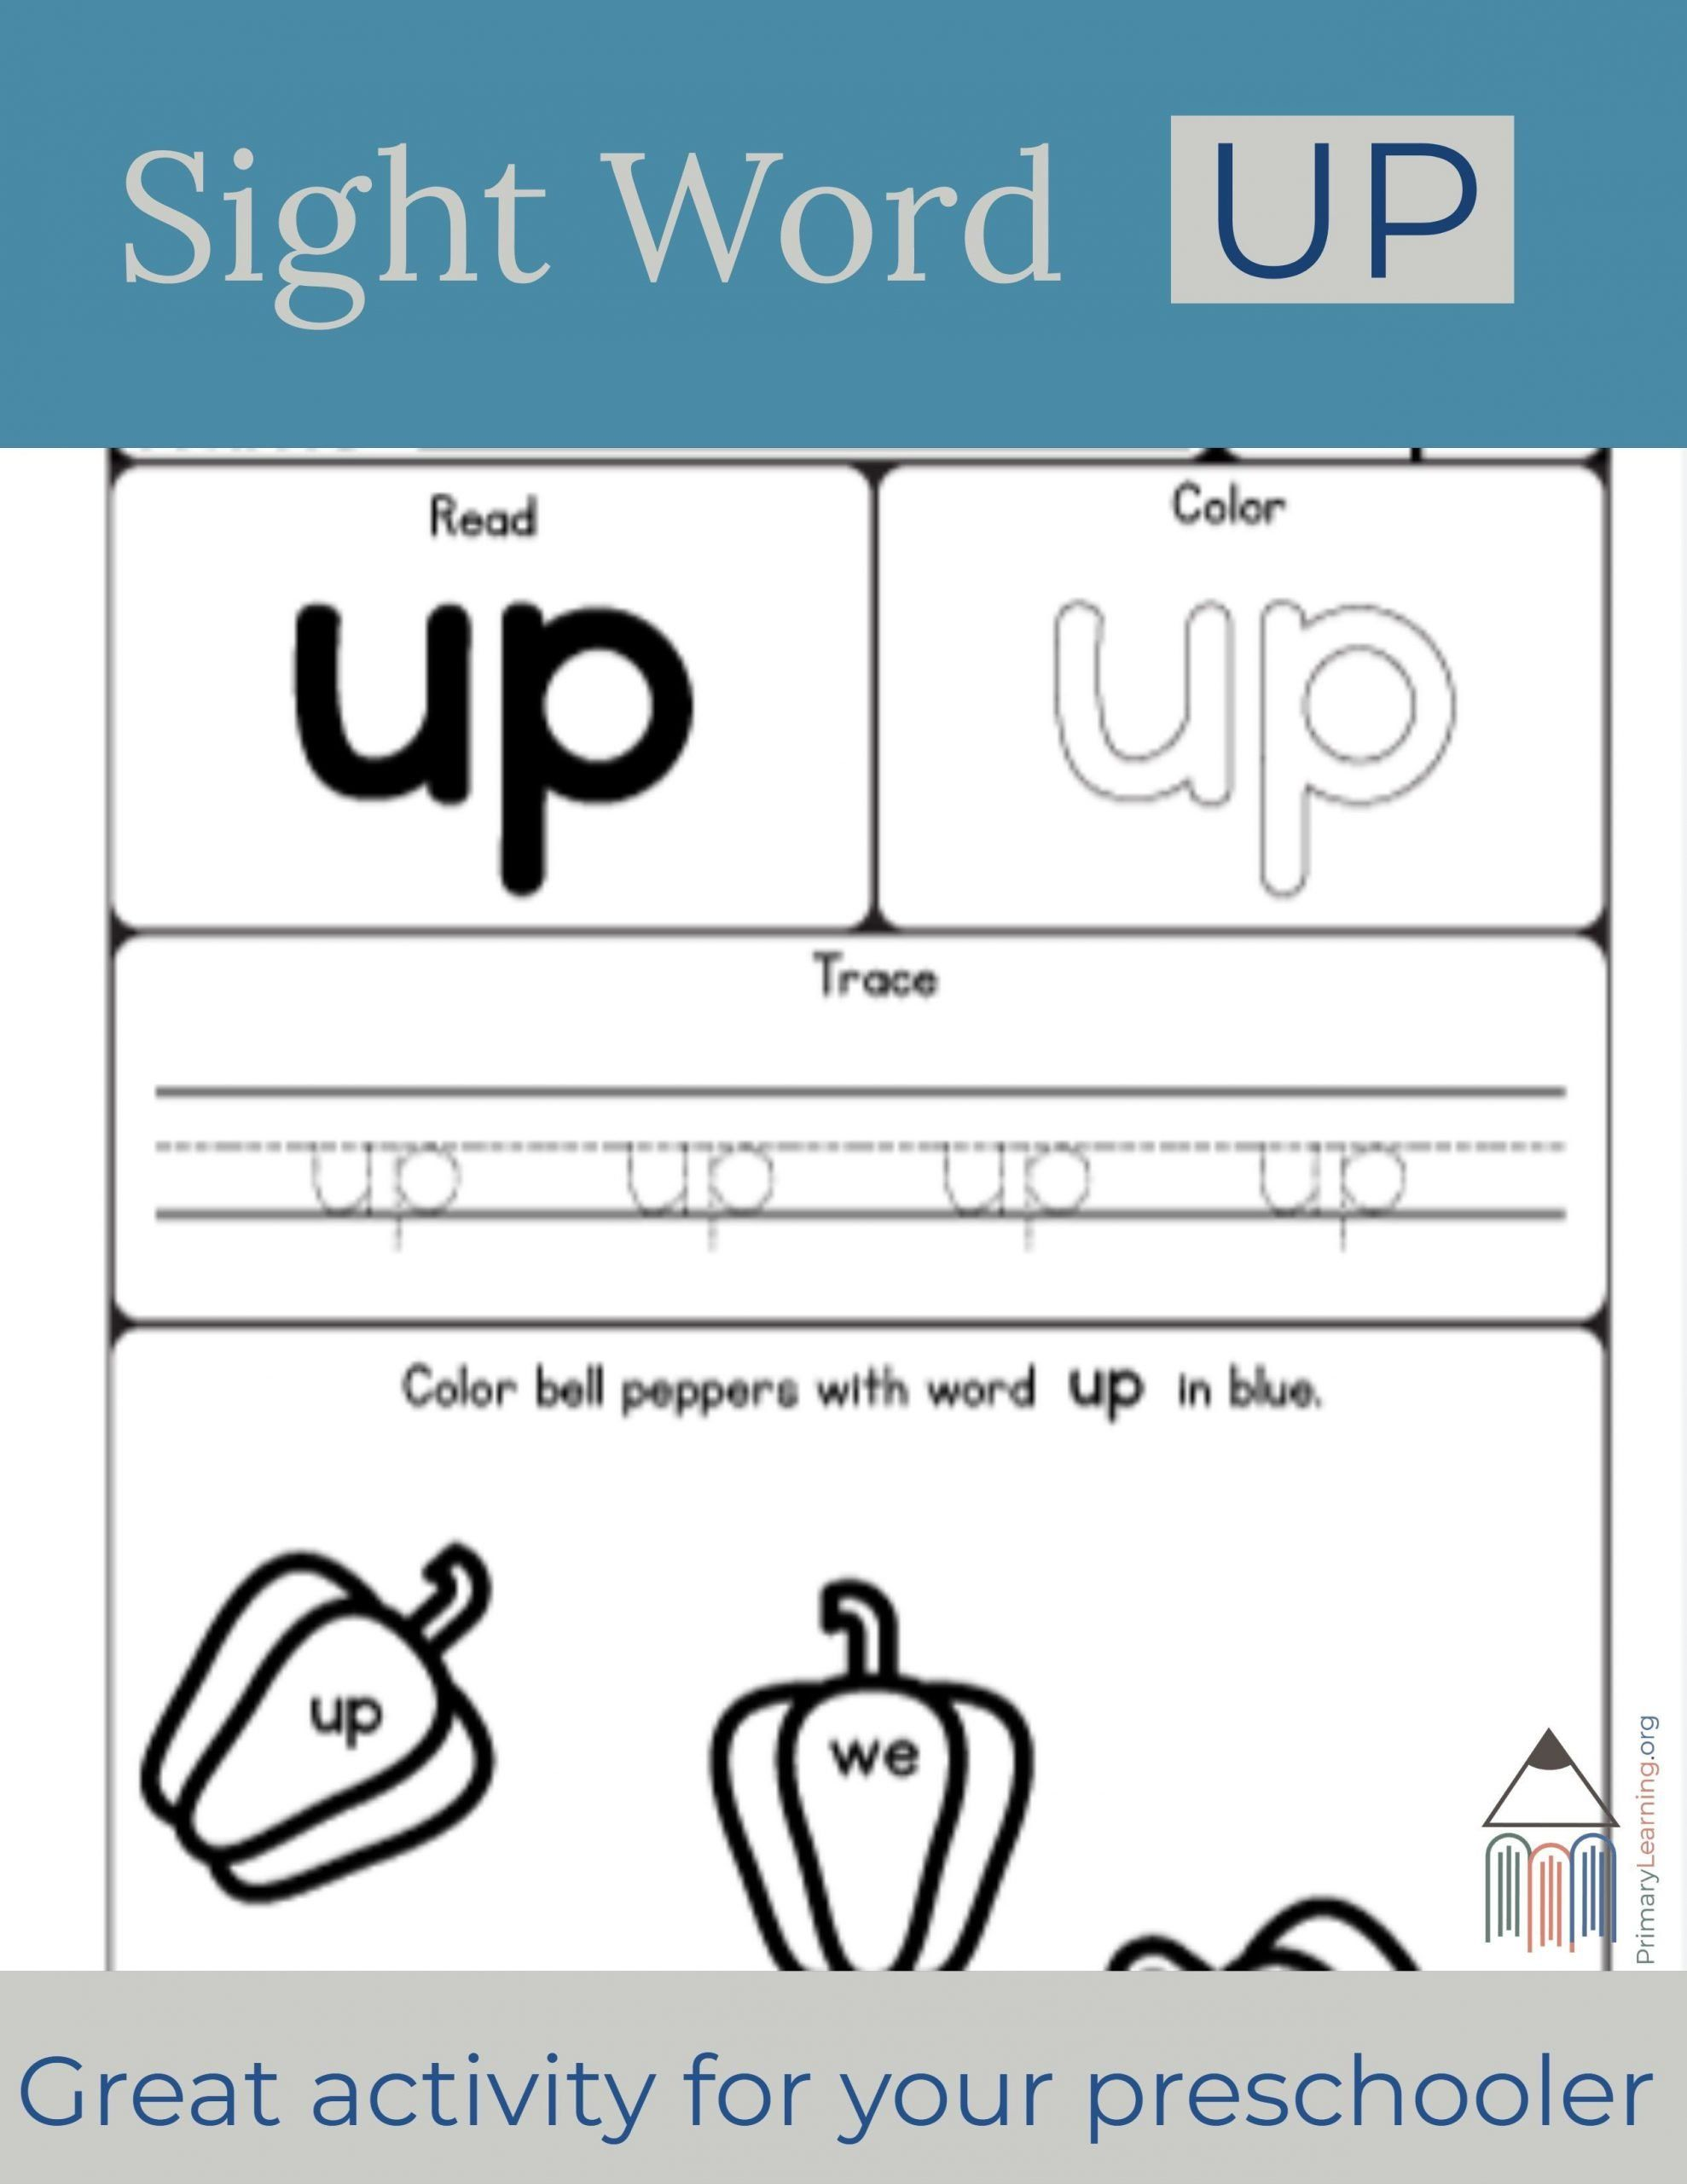 We Sight Word Worksheet Sight Word Up Worksheet Sight Word Worksheets Sight Words Learning Sight Words